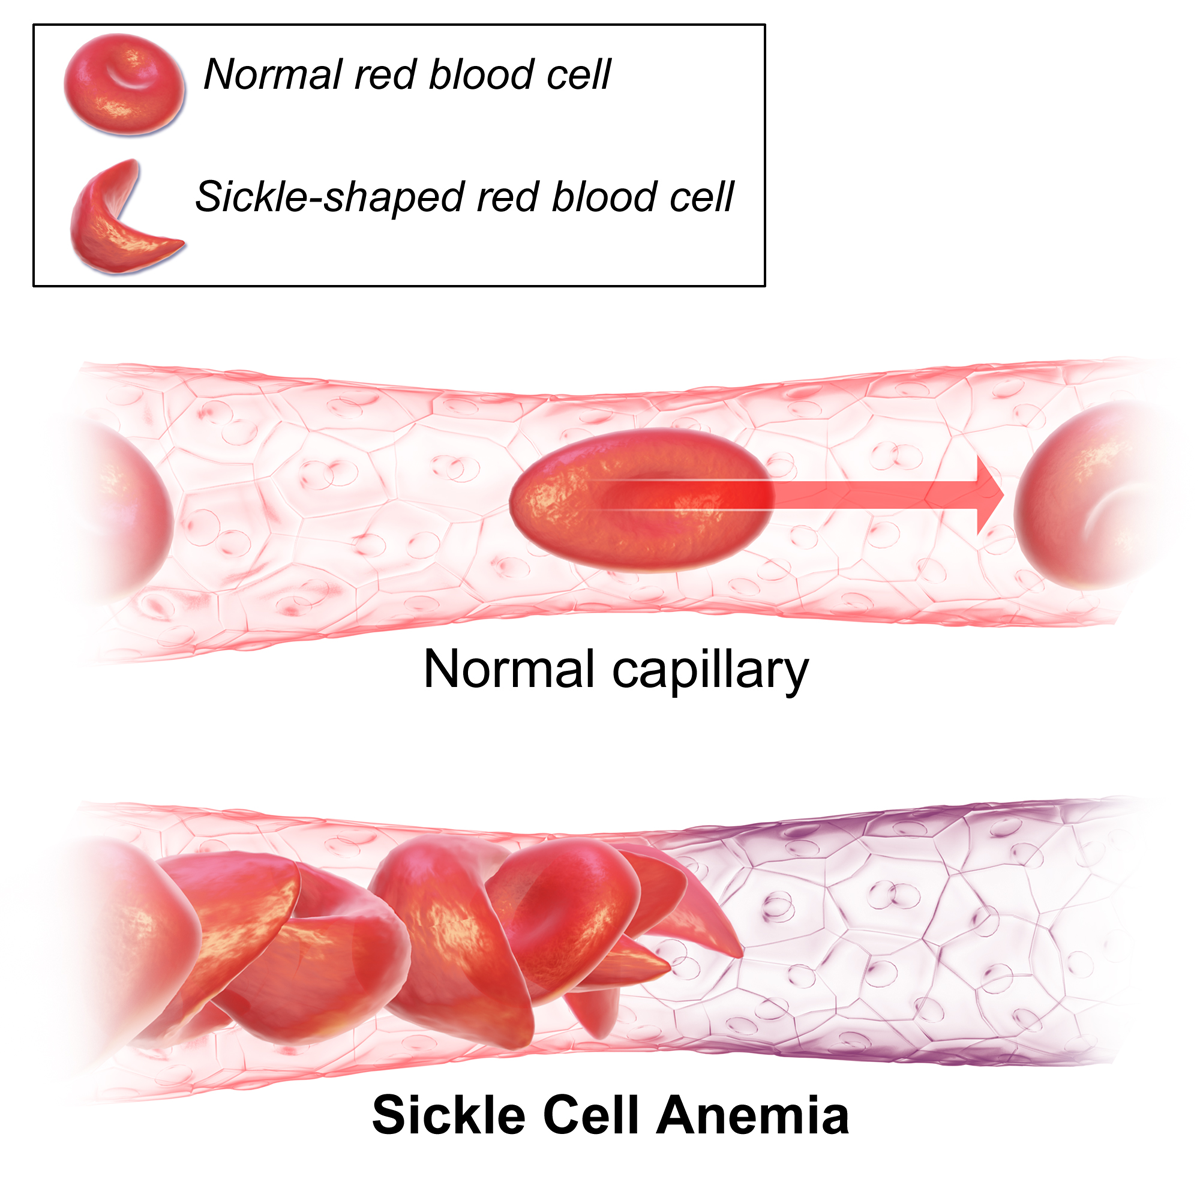 sickle cell anemia essay example If you have difficulties on writing paper for your class on sickle-cell disease, feel free to read this great essay sample our experts prepared for you.